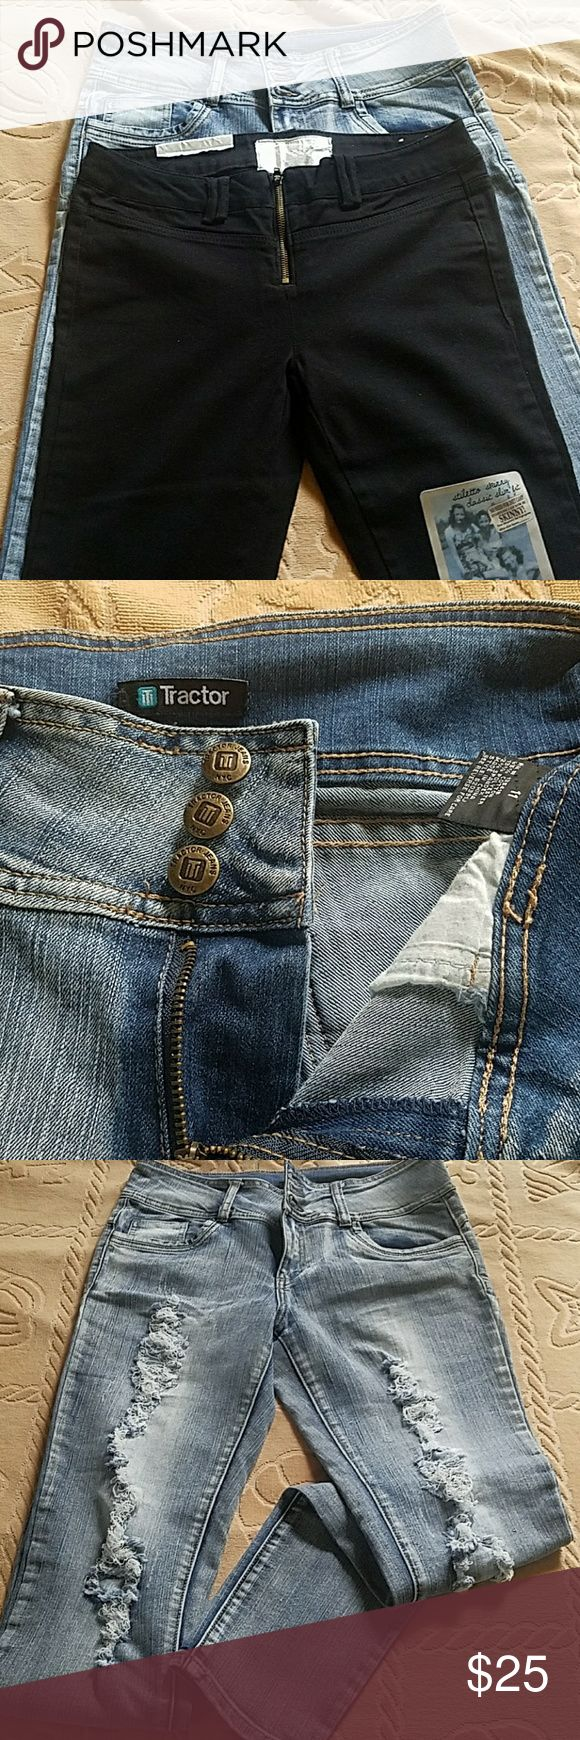 Two pair of jeans - the bundle to save on shipping Black Dollhouse  stiletto skinny jeans. Classic slim fit. Size 13. Some tags are still attached. Blue Tractor jeans worn once. Size 11. You can see on the picture that they are very close in sizing and exactly the same length. Dollhouse Jeans Skinny